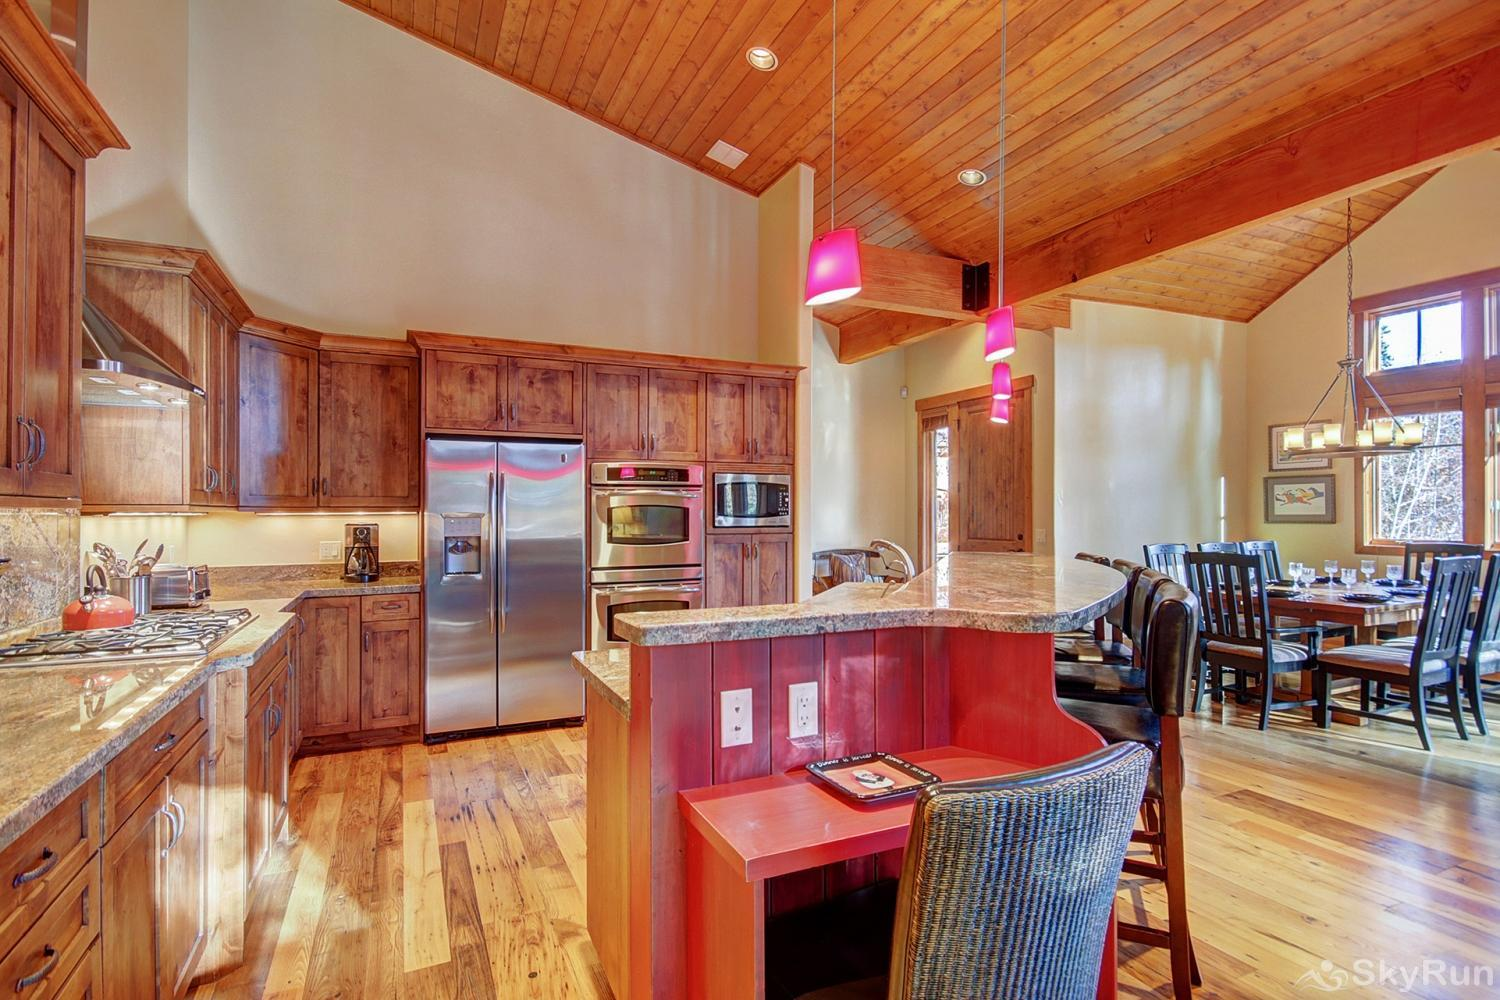 Shock Hill Escape Fully equipped kitchen updated with modern stainless steel appliances